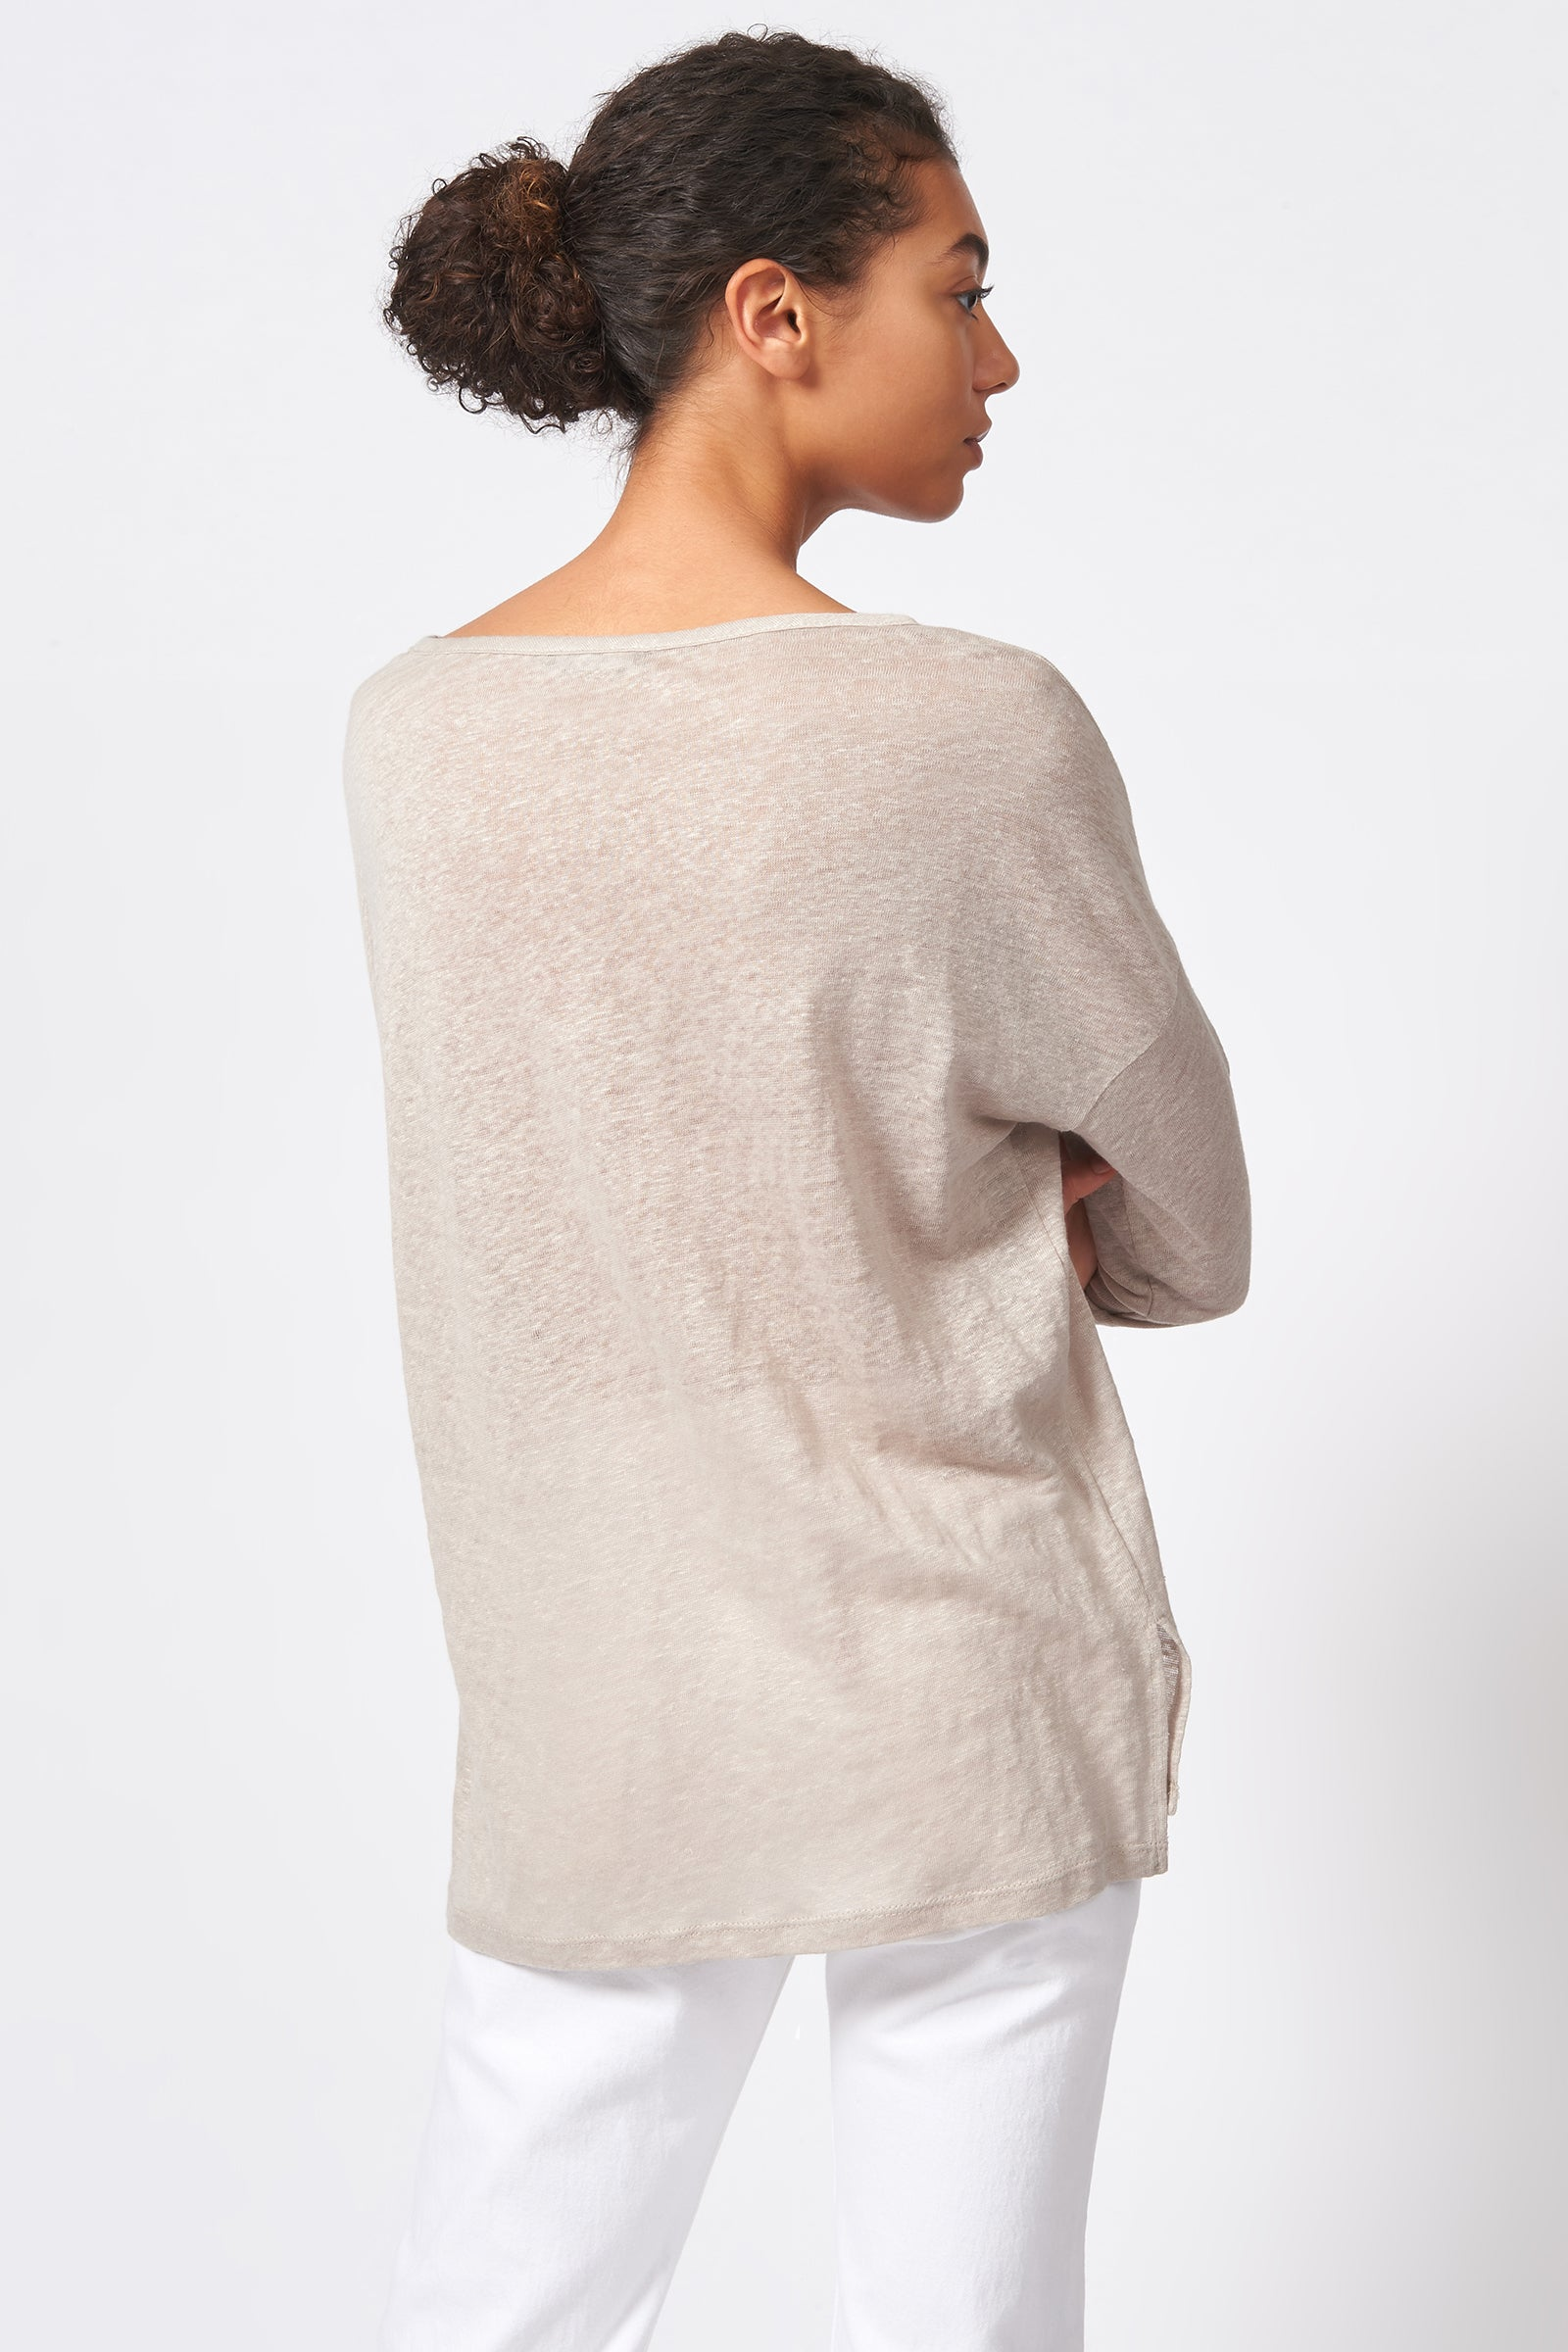 Kal Rieman Boat Neck Box Tee in Khaki on Model Front Side View